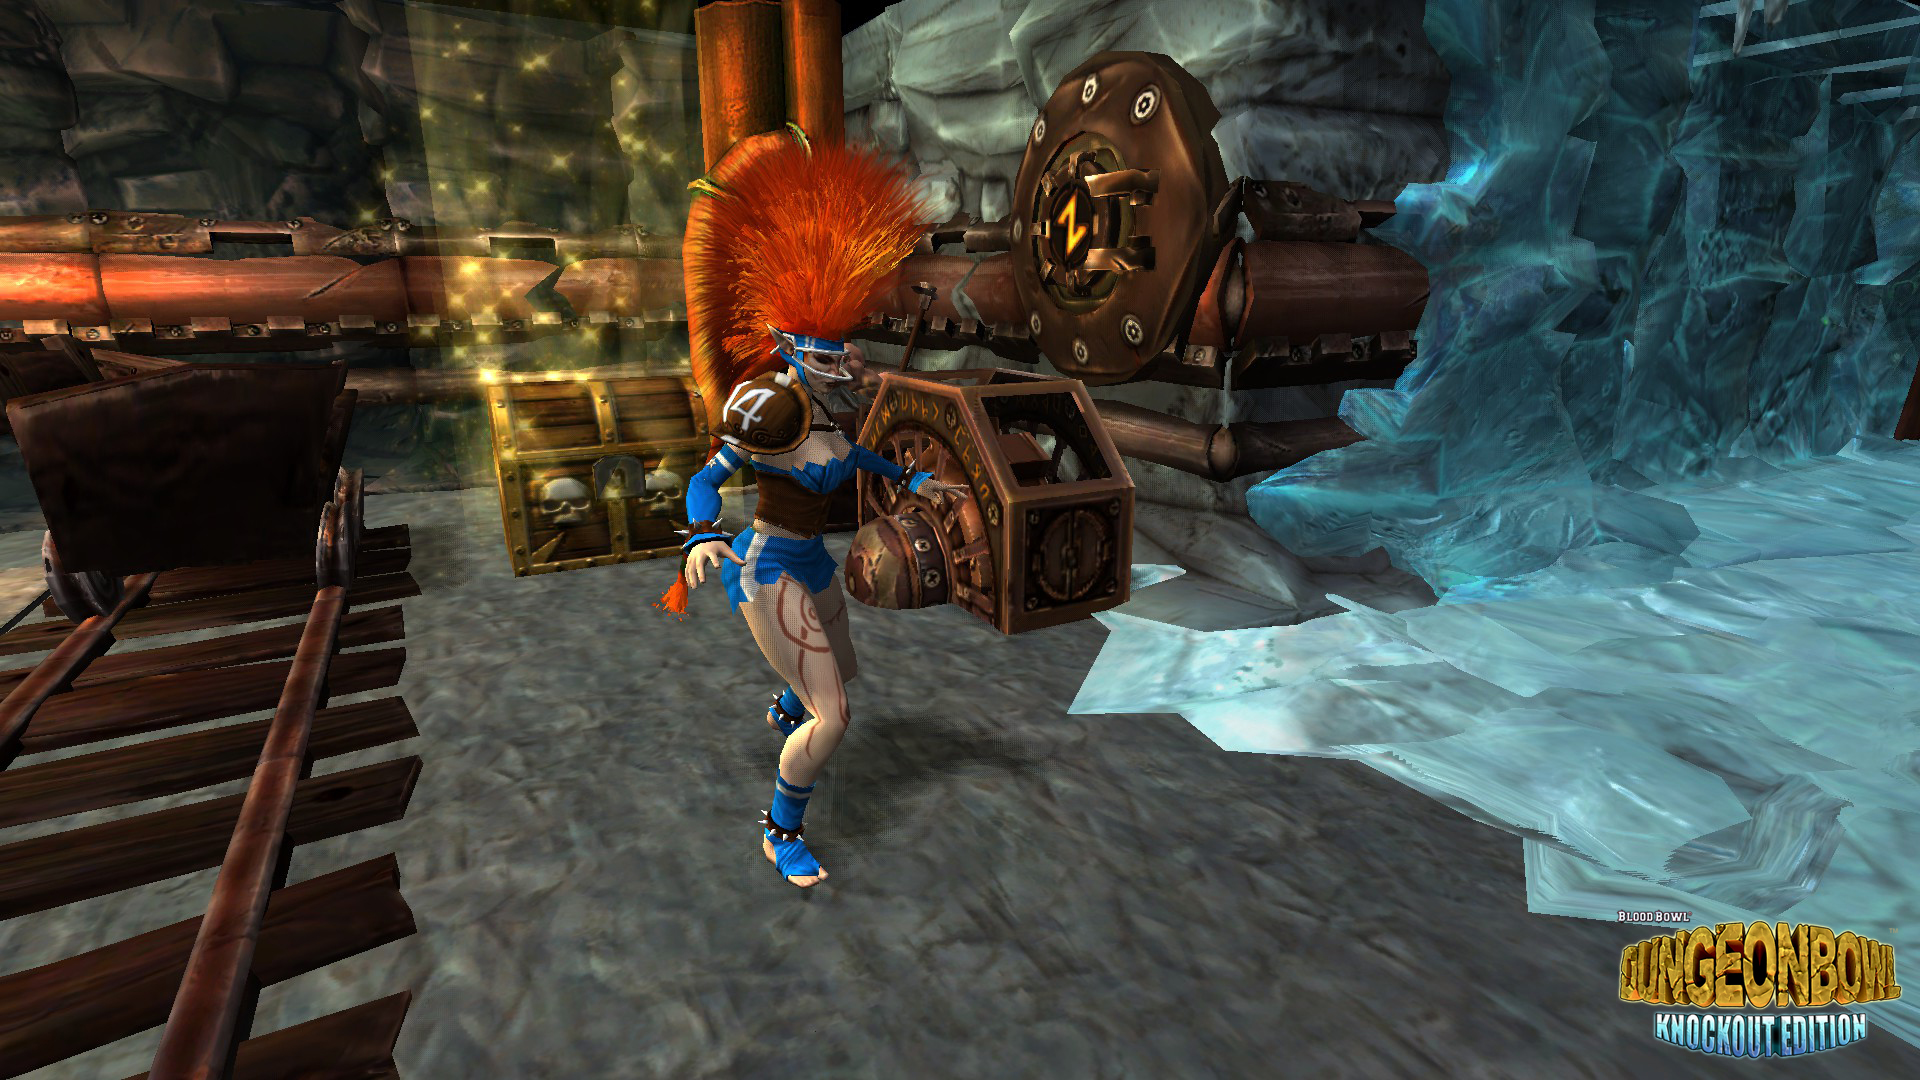 Dungeonbowl – Knockout Edition